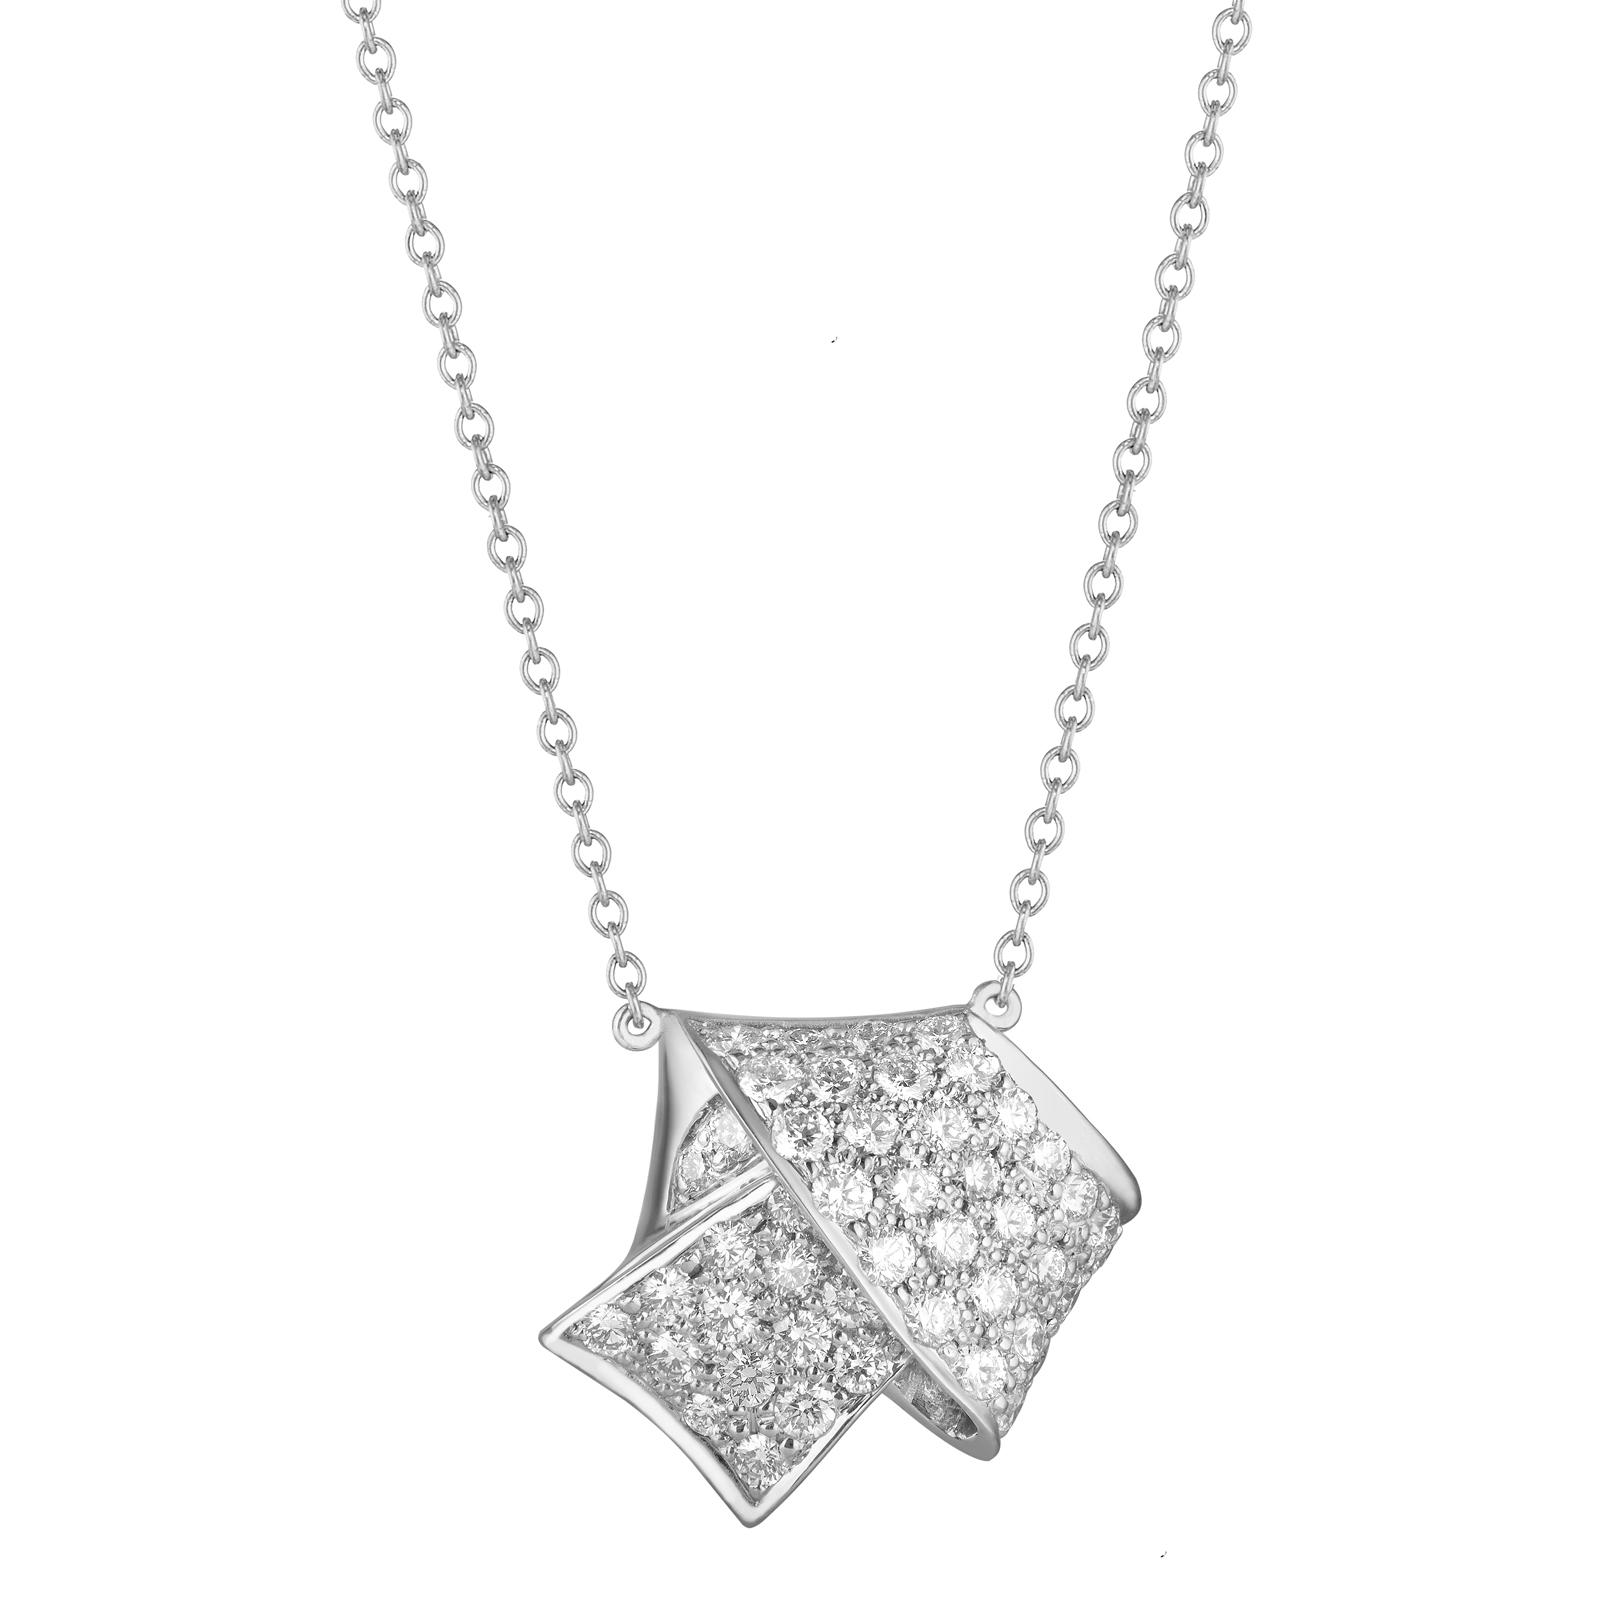 JUMBO KNOT PAVE DIAMOND PENDANT IN WHITE GOLD